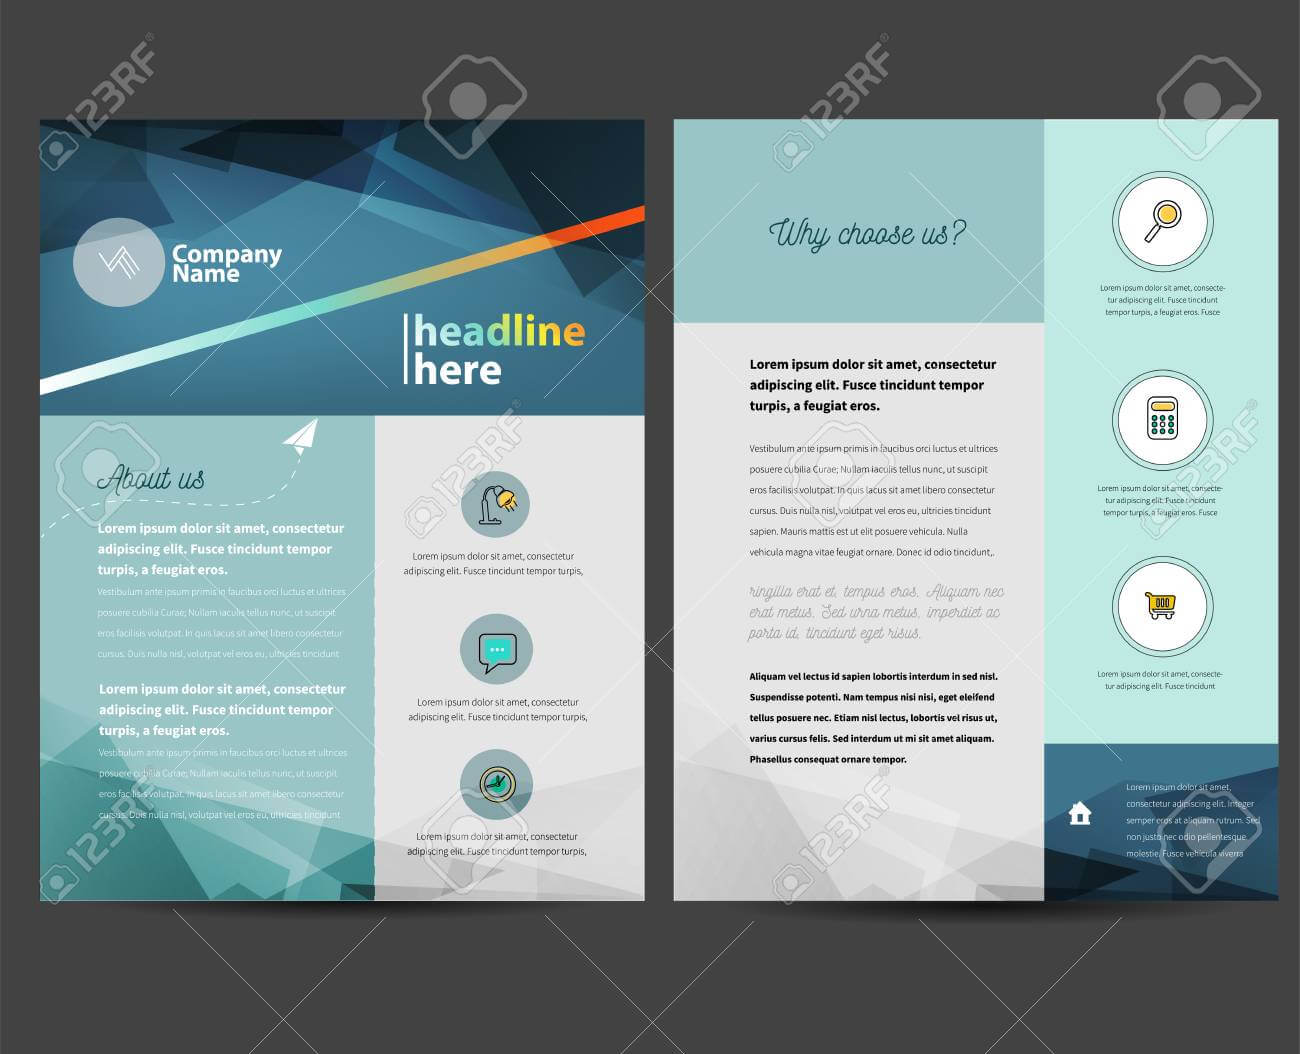 Brochure Or Flyer Design Template In Letter Size within Letter Size Brochure Template